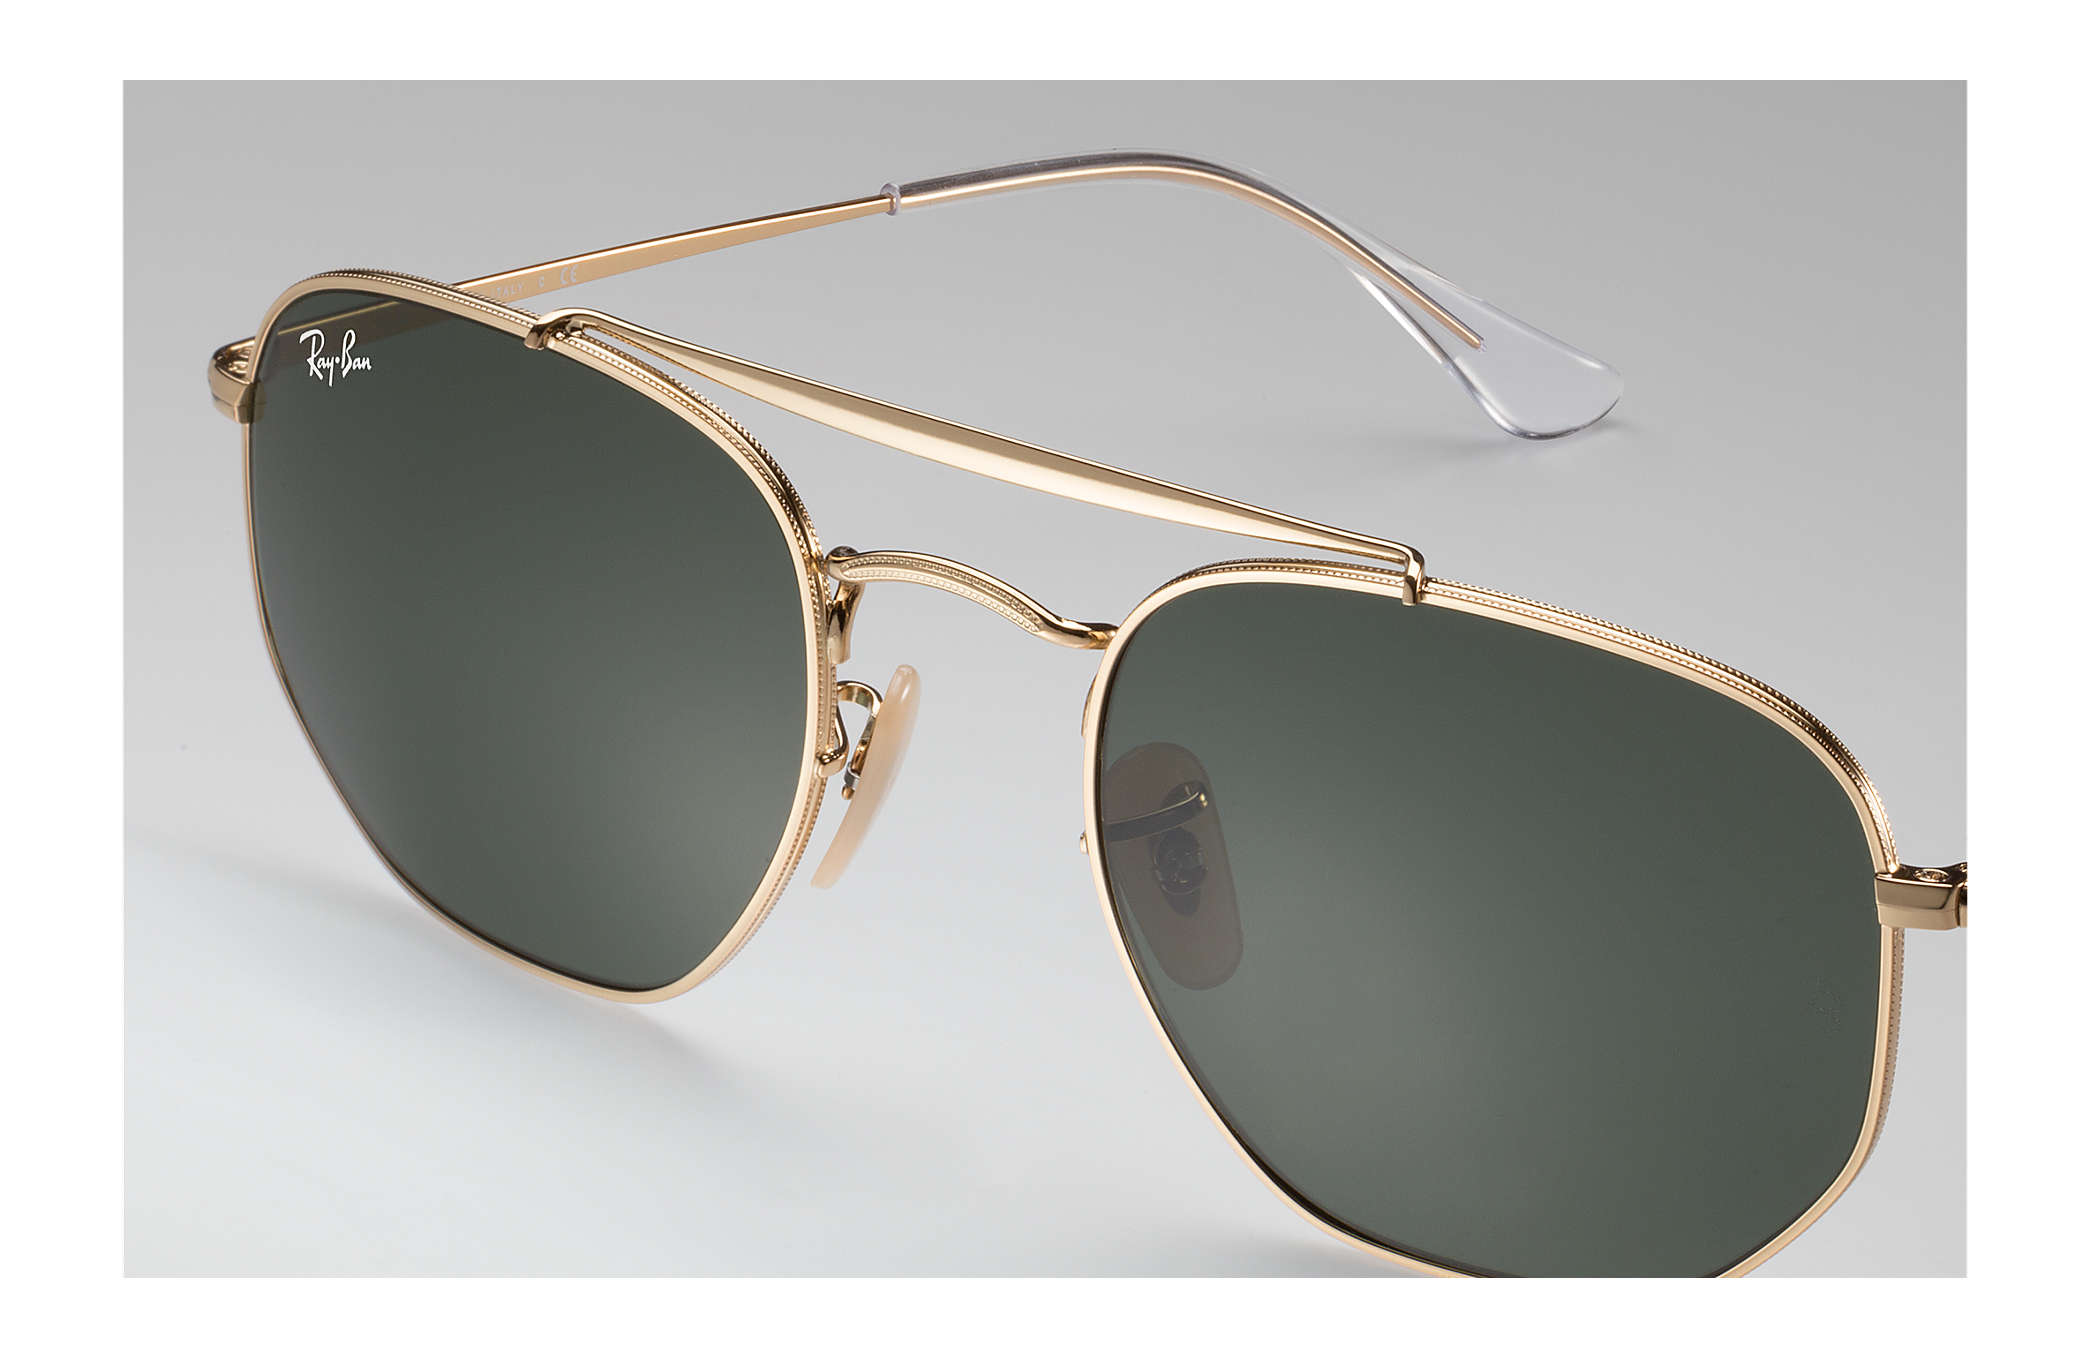 78eee3694c Ray-Ban Marshal RB3648 Gold - Metal - Green Lenses - 0RB364800154 ...